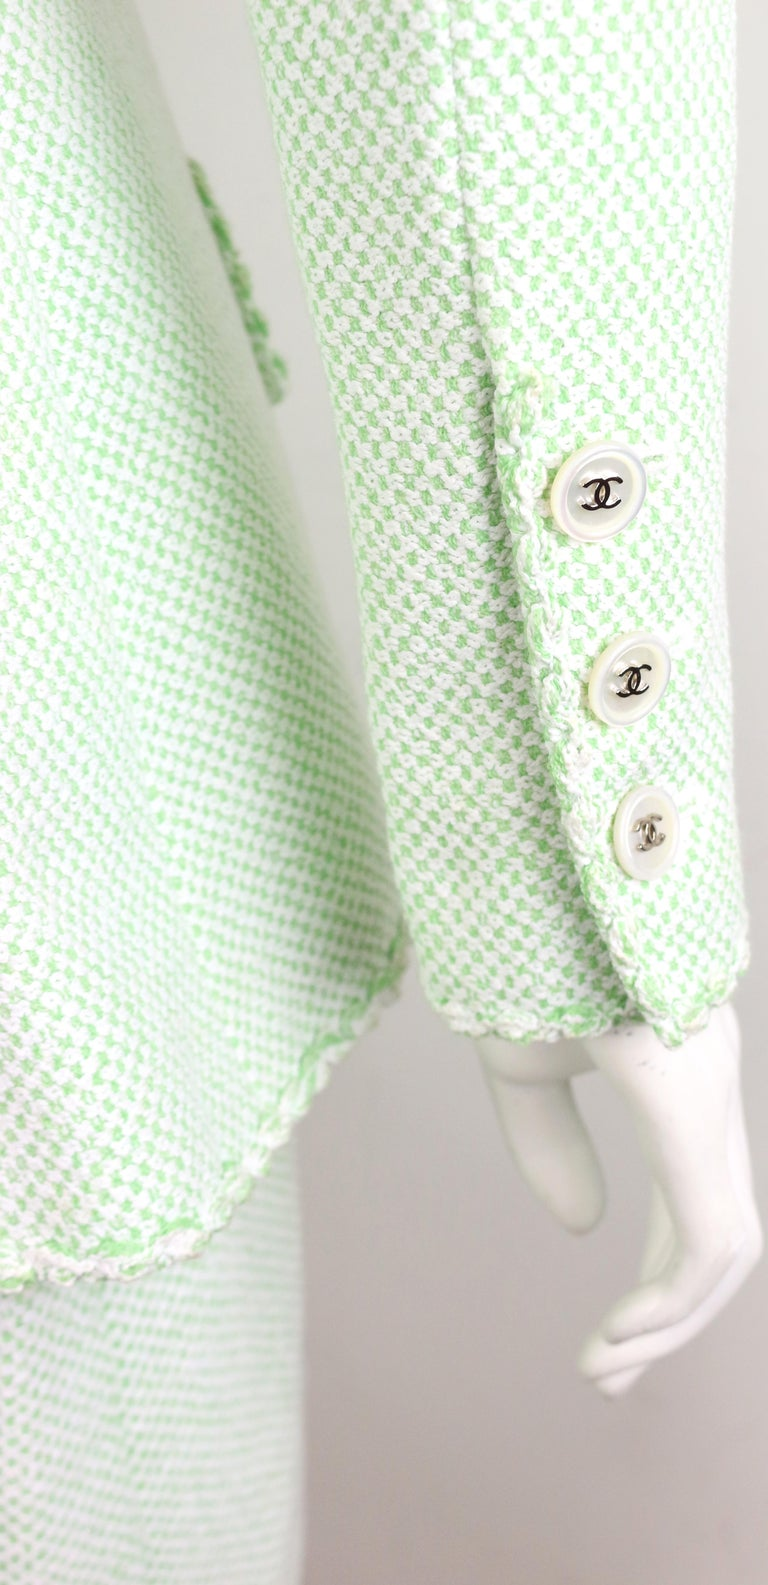 Women's Chanel White/Green Cotton and Wool Double-Breasted Jacket and Skirt Ensemble  For Sale